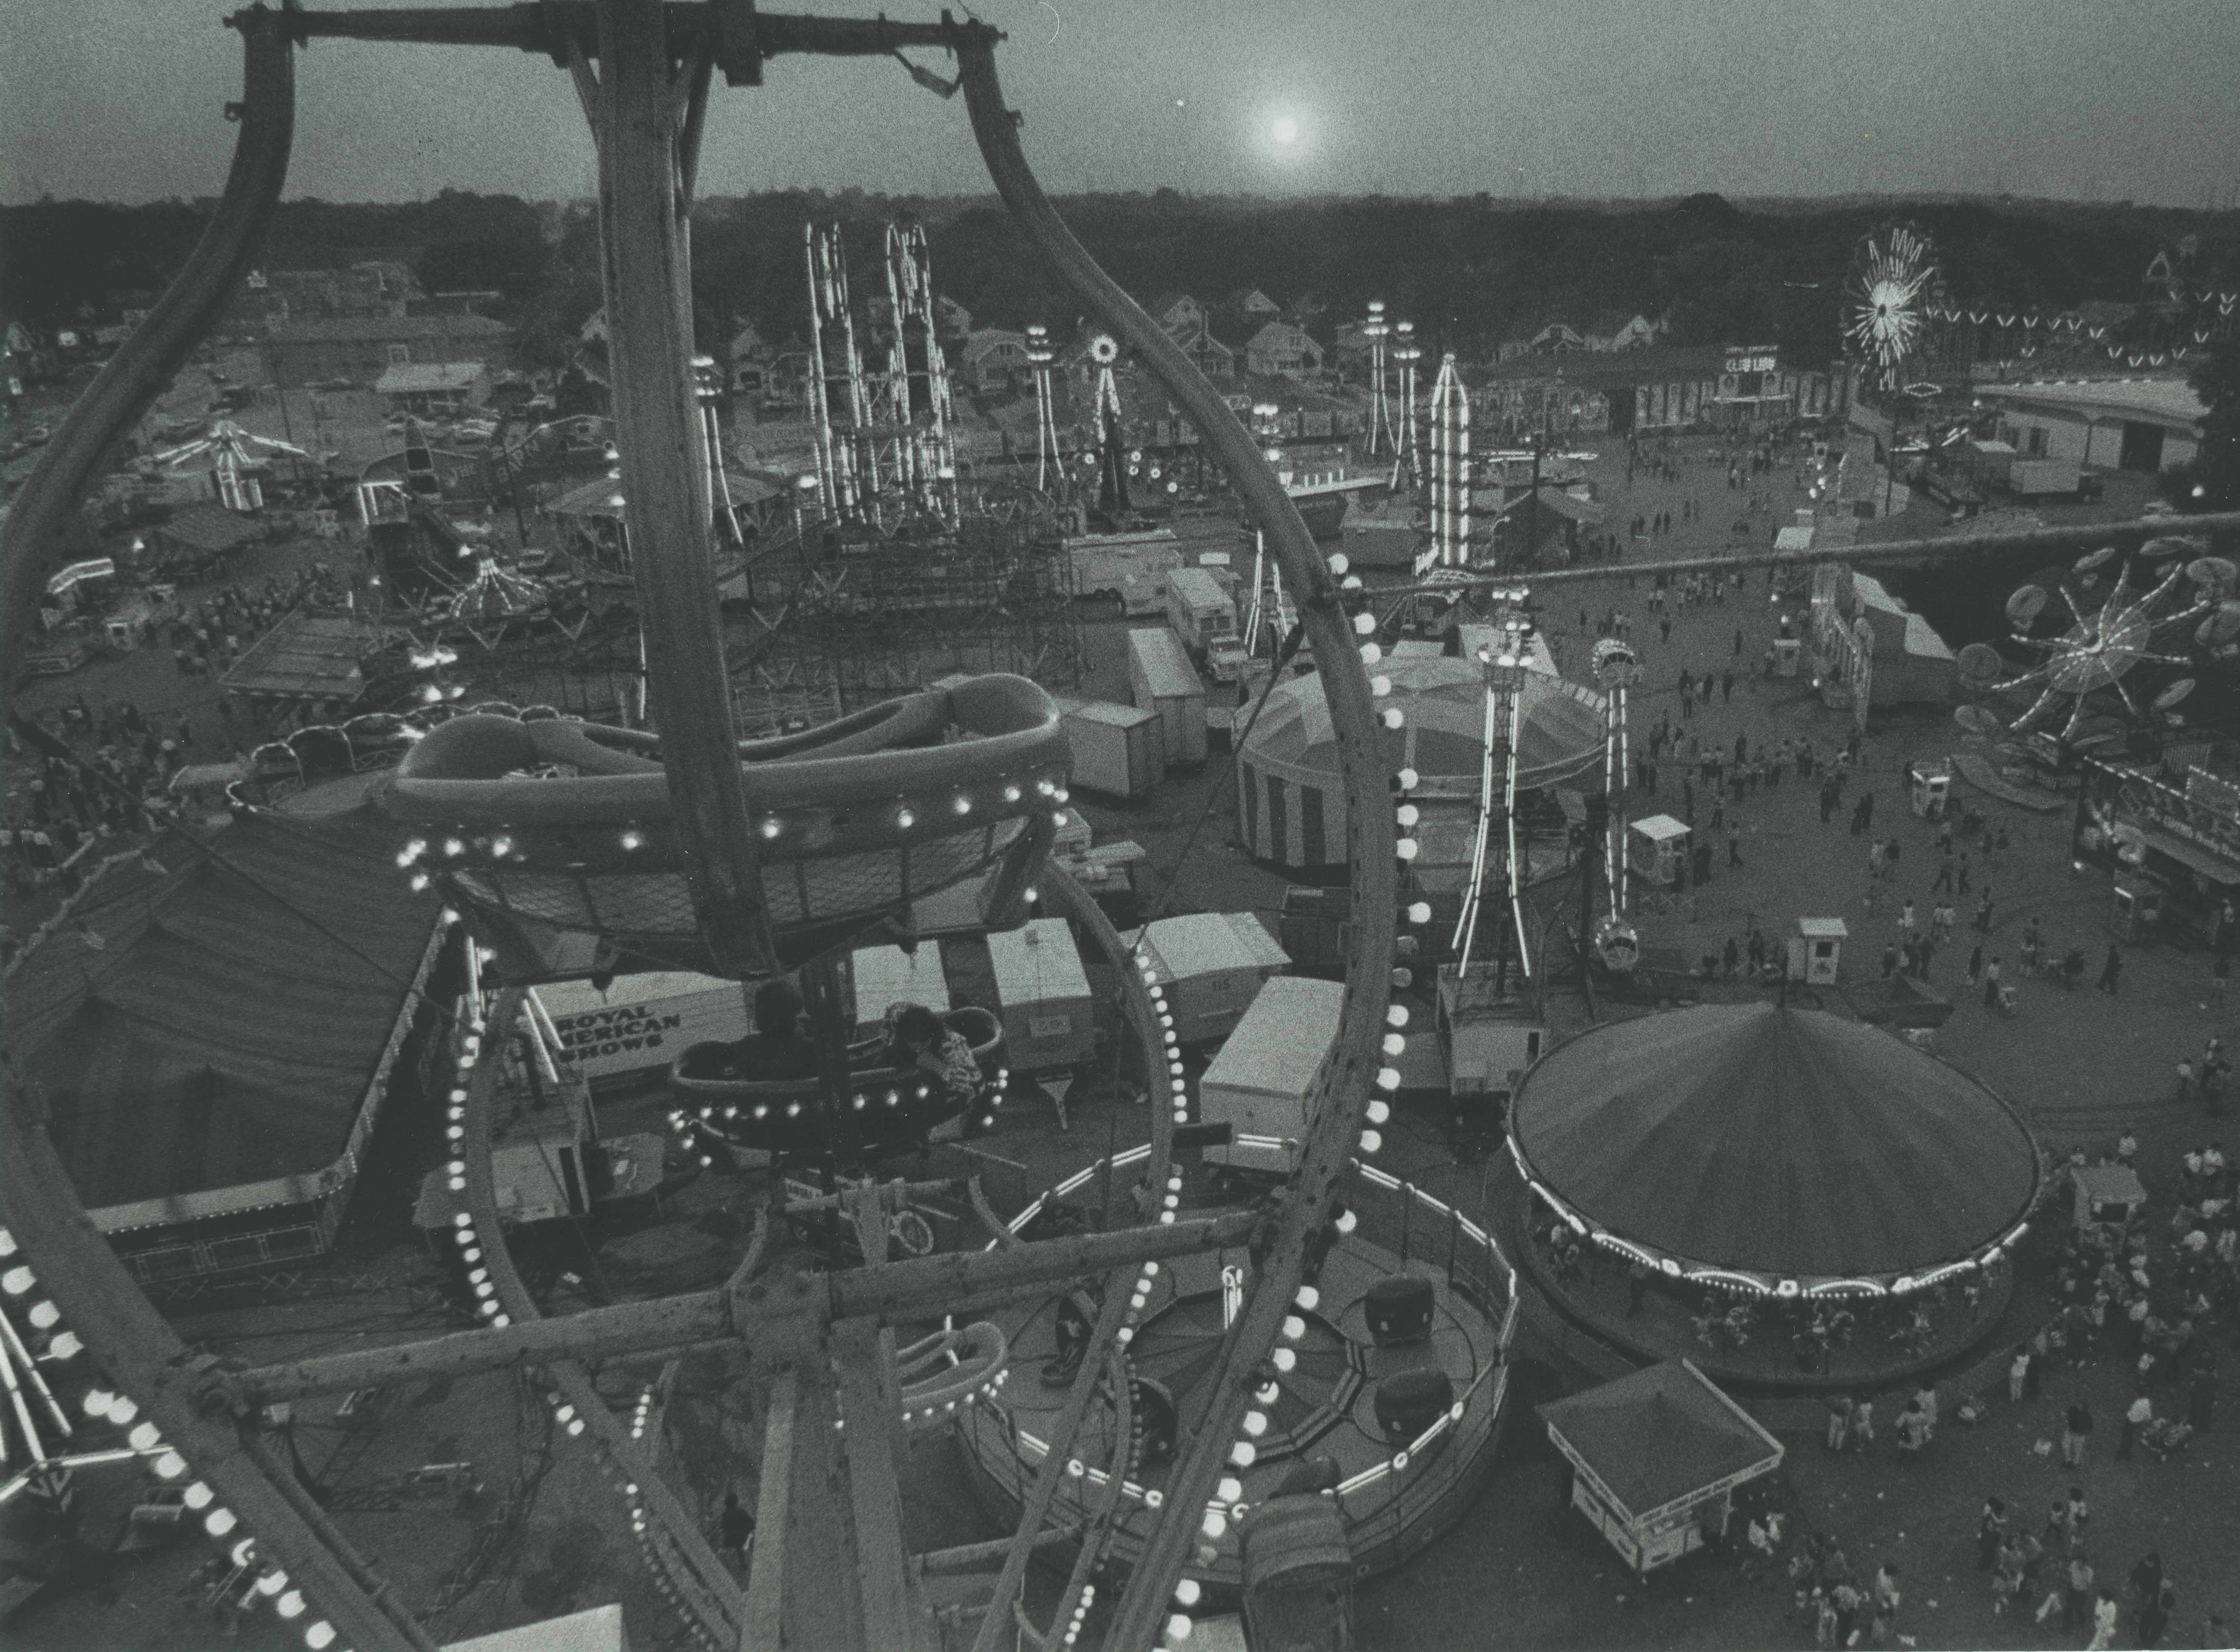 <table class=&quot;lightbox&quot;><tr><td colspan=2 class=&quot;lightbox-title&quot;>State Fair in the Evening</td></tr><tr><td colspan=2 class=&quot;lightbox-caption&quot;>A view of the Wisconsin State Fair from atop the giant Ferris Wheel in 1971.</td></tr><tr><td colspan=2 class=&quot;lightbox-spacer&quot;></td></tr><tr class=&quot;lightbox-detail&quot;><td class=&quot;cell-title&quot;>Source: </td><td class=&quot;cell-value&quot;>From the Historic Photo Collection of the Milwaukee Public Library. Reprinted with permission.<br /><a href=&quot;http://content.mpl.org/cdm/singleitem/collection/HstoricPho/id/6063/rec/36&quot; target=&quot;_blank&quot;>Milwaukee Public Library</a></td></tr><tr class=&quot;filler-row&quot;><td colspan=2>&nbsp;</td></tr></table>